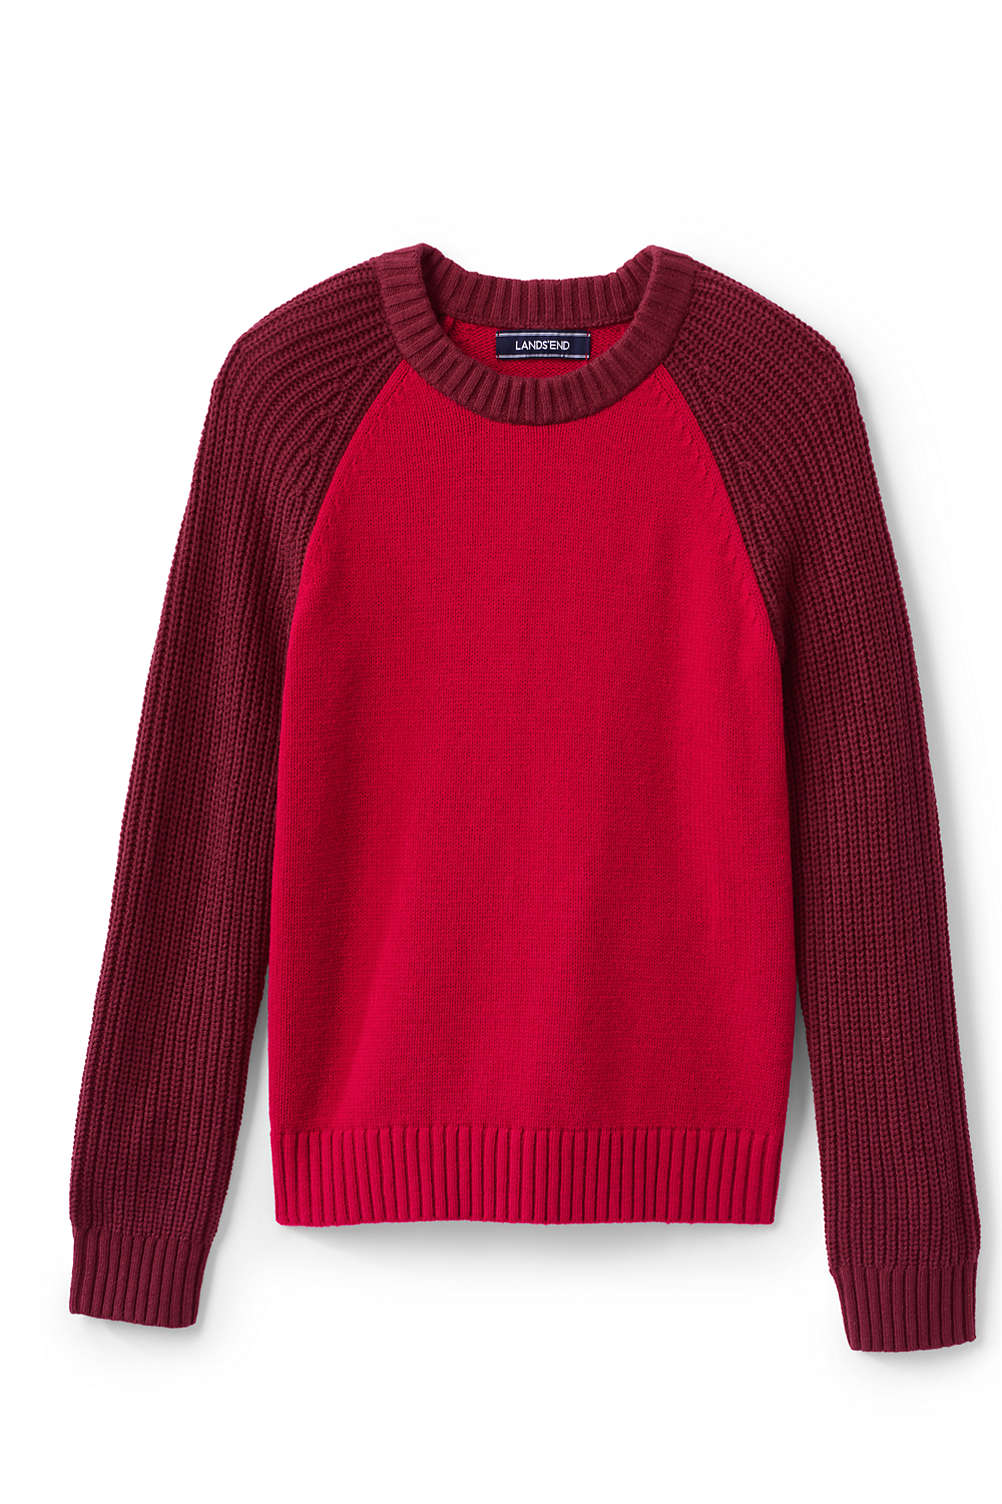 9e128bab460b Boys Crewneck Fisherman Sweater from Lands  End